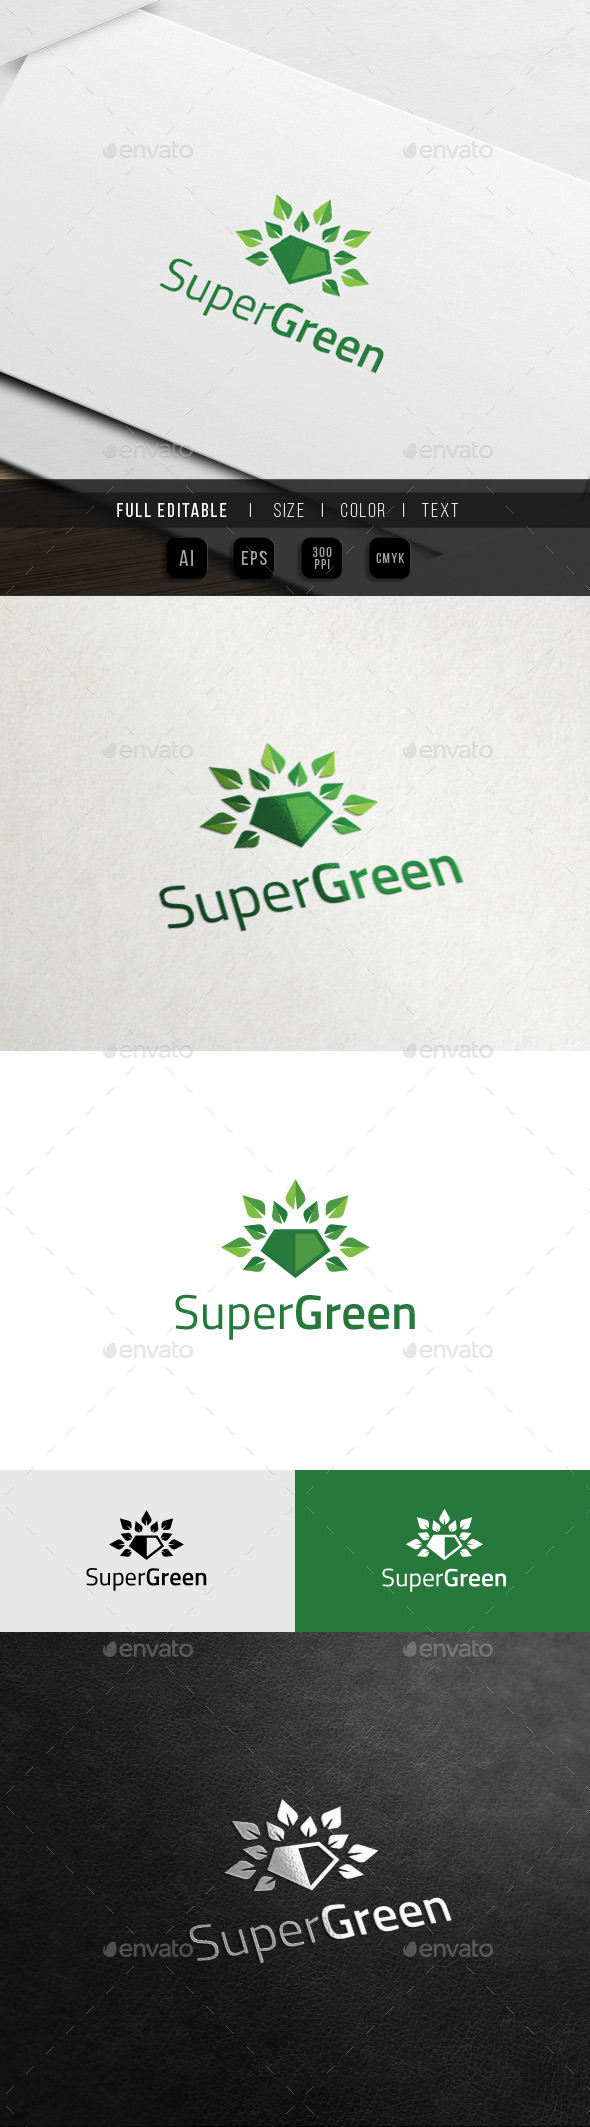 Super Go Green - Eco Hero Logo - Nature Logo Templates